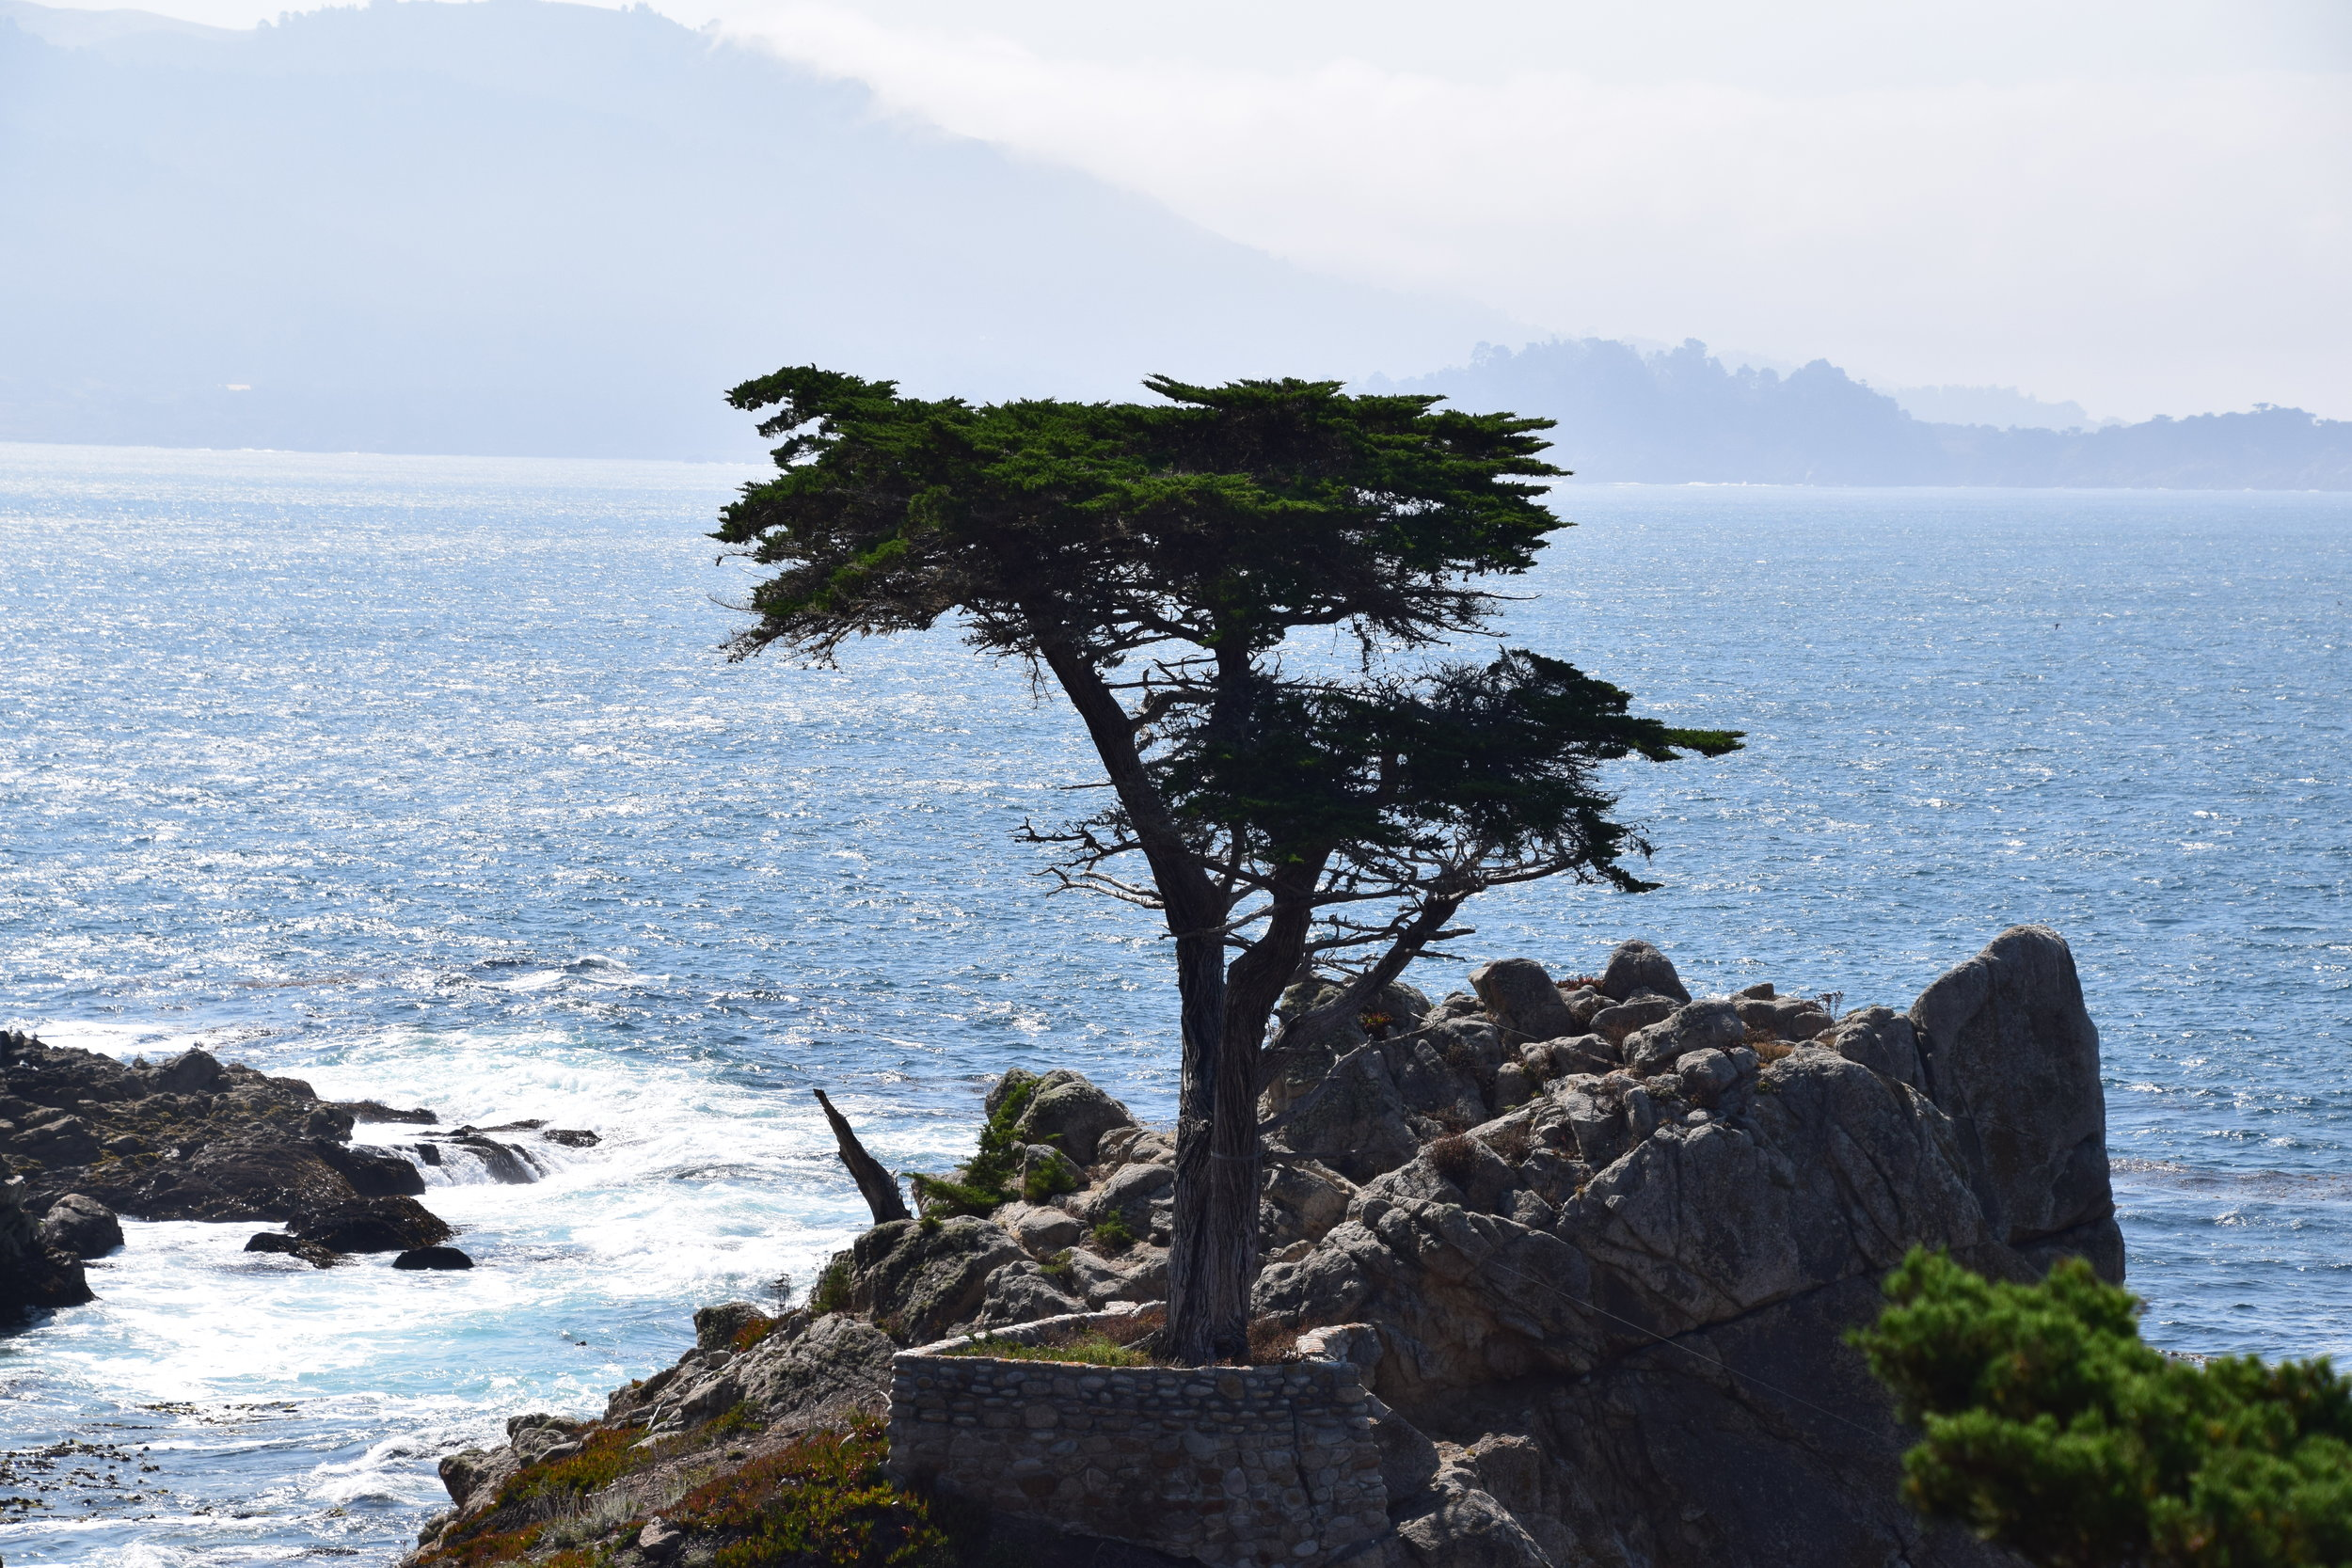 17-Mile Drive, Cypress Tree.